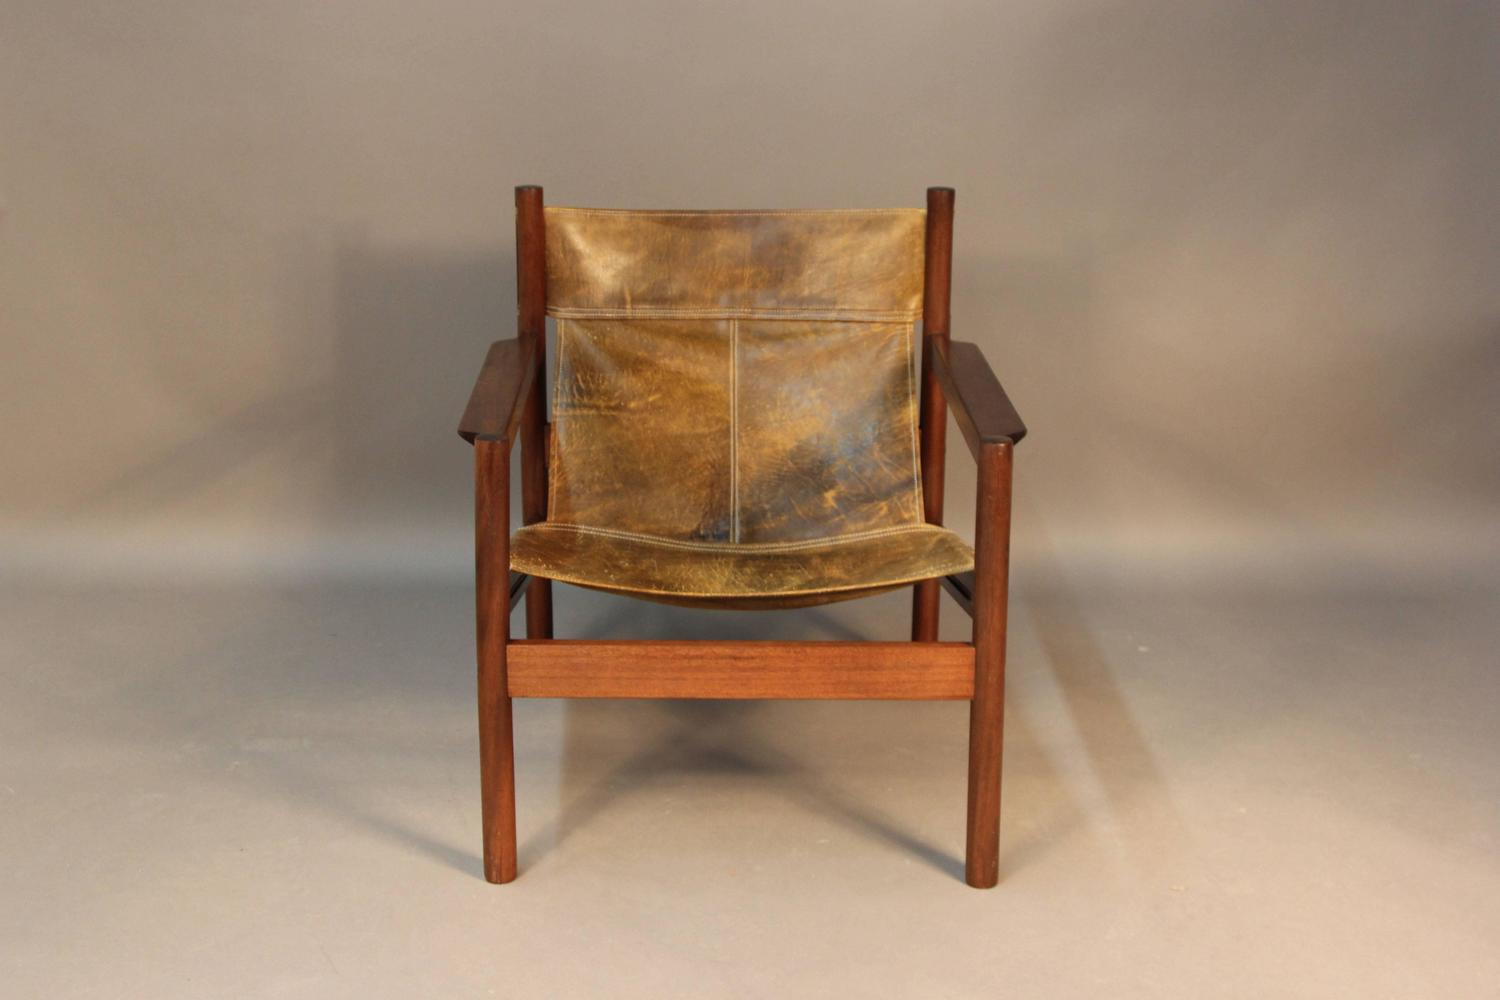 sling back chair hanging noosa michel arnoult distressed leather at 1stdibs